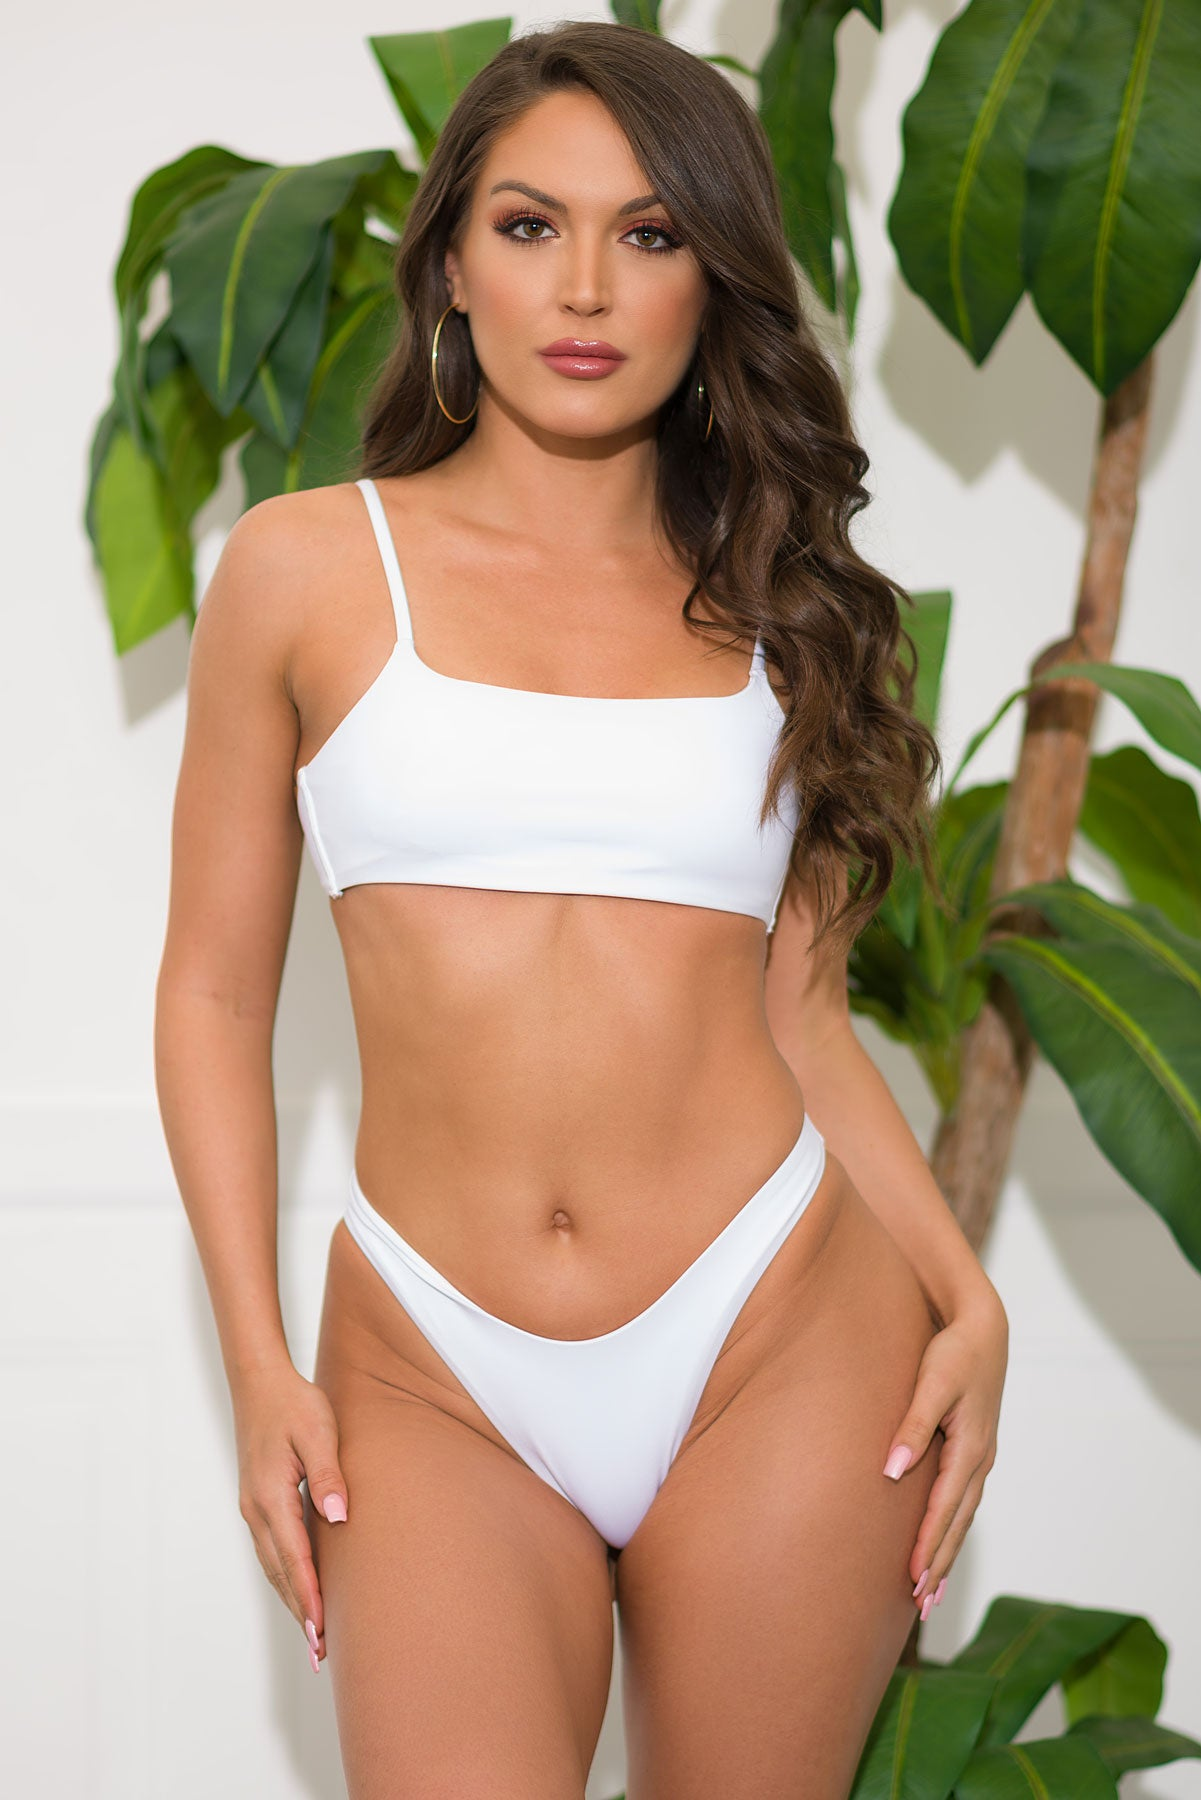 Key West Beach Two Piece Swimsuit - White